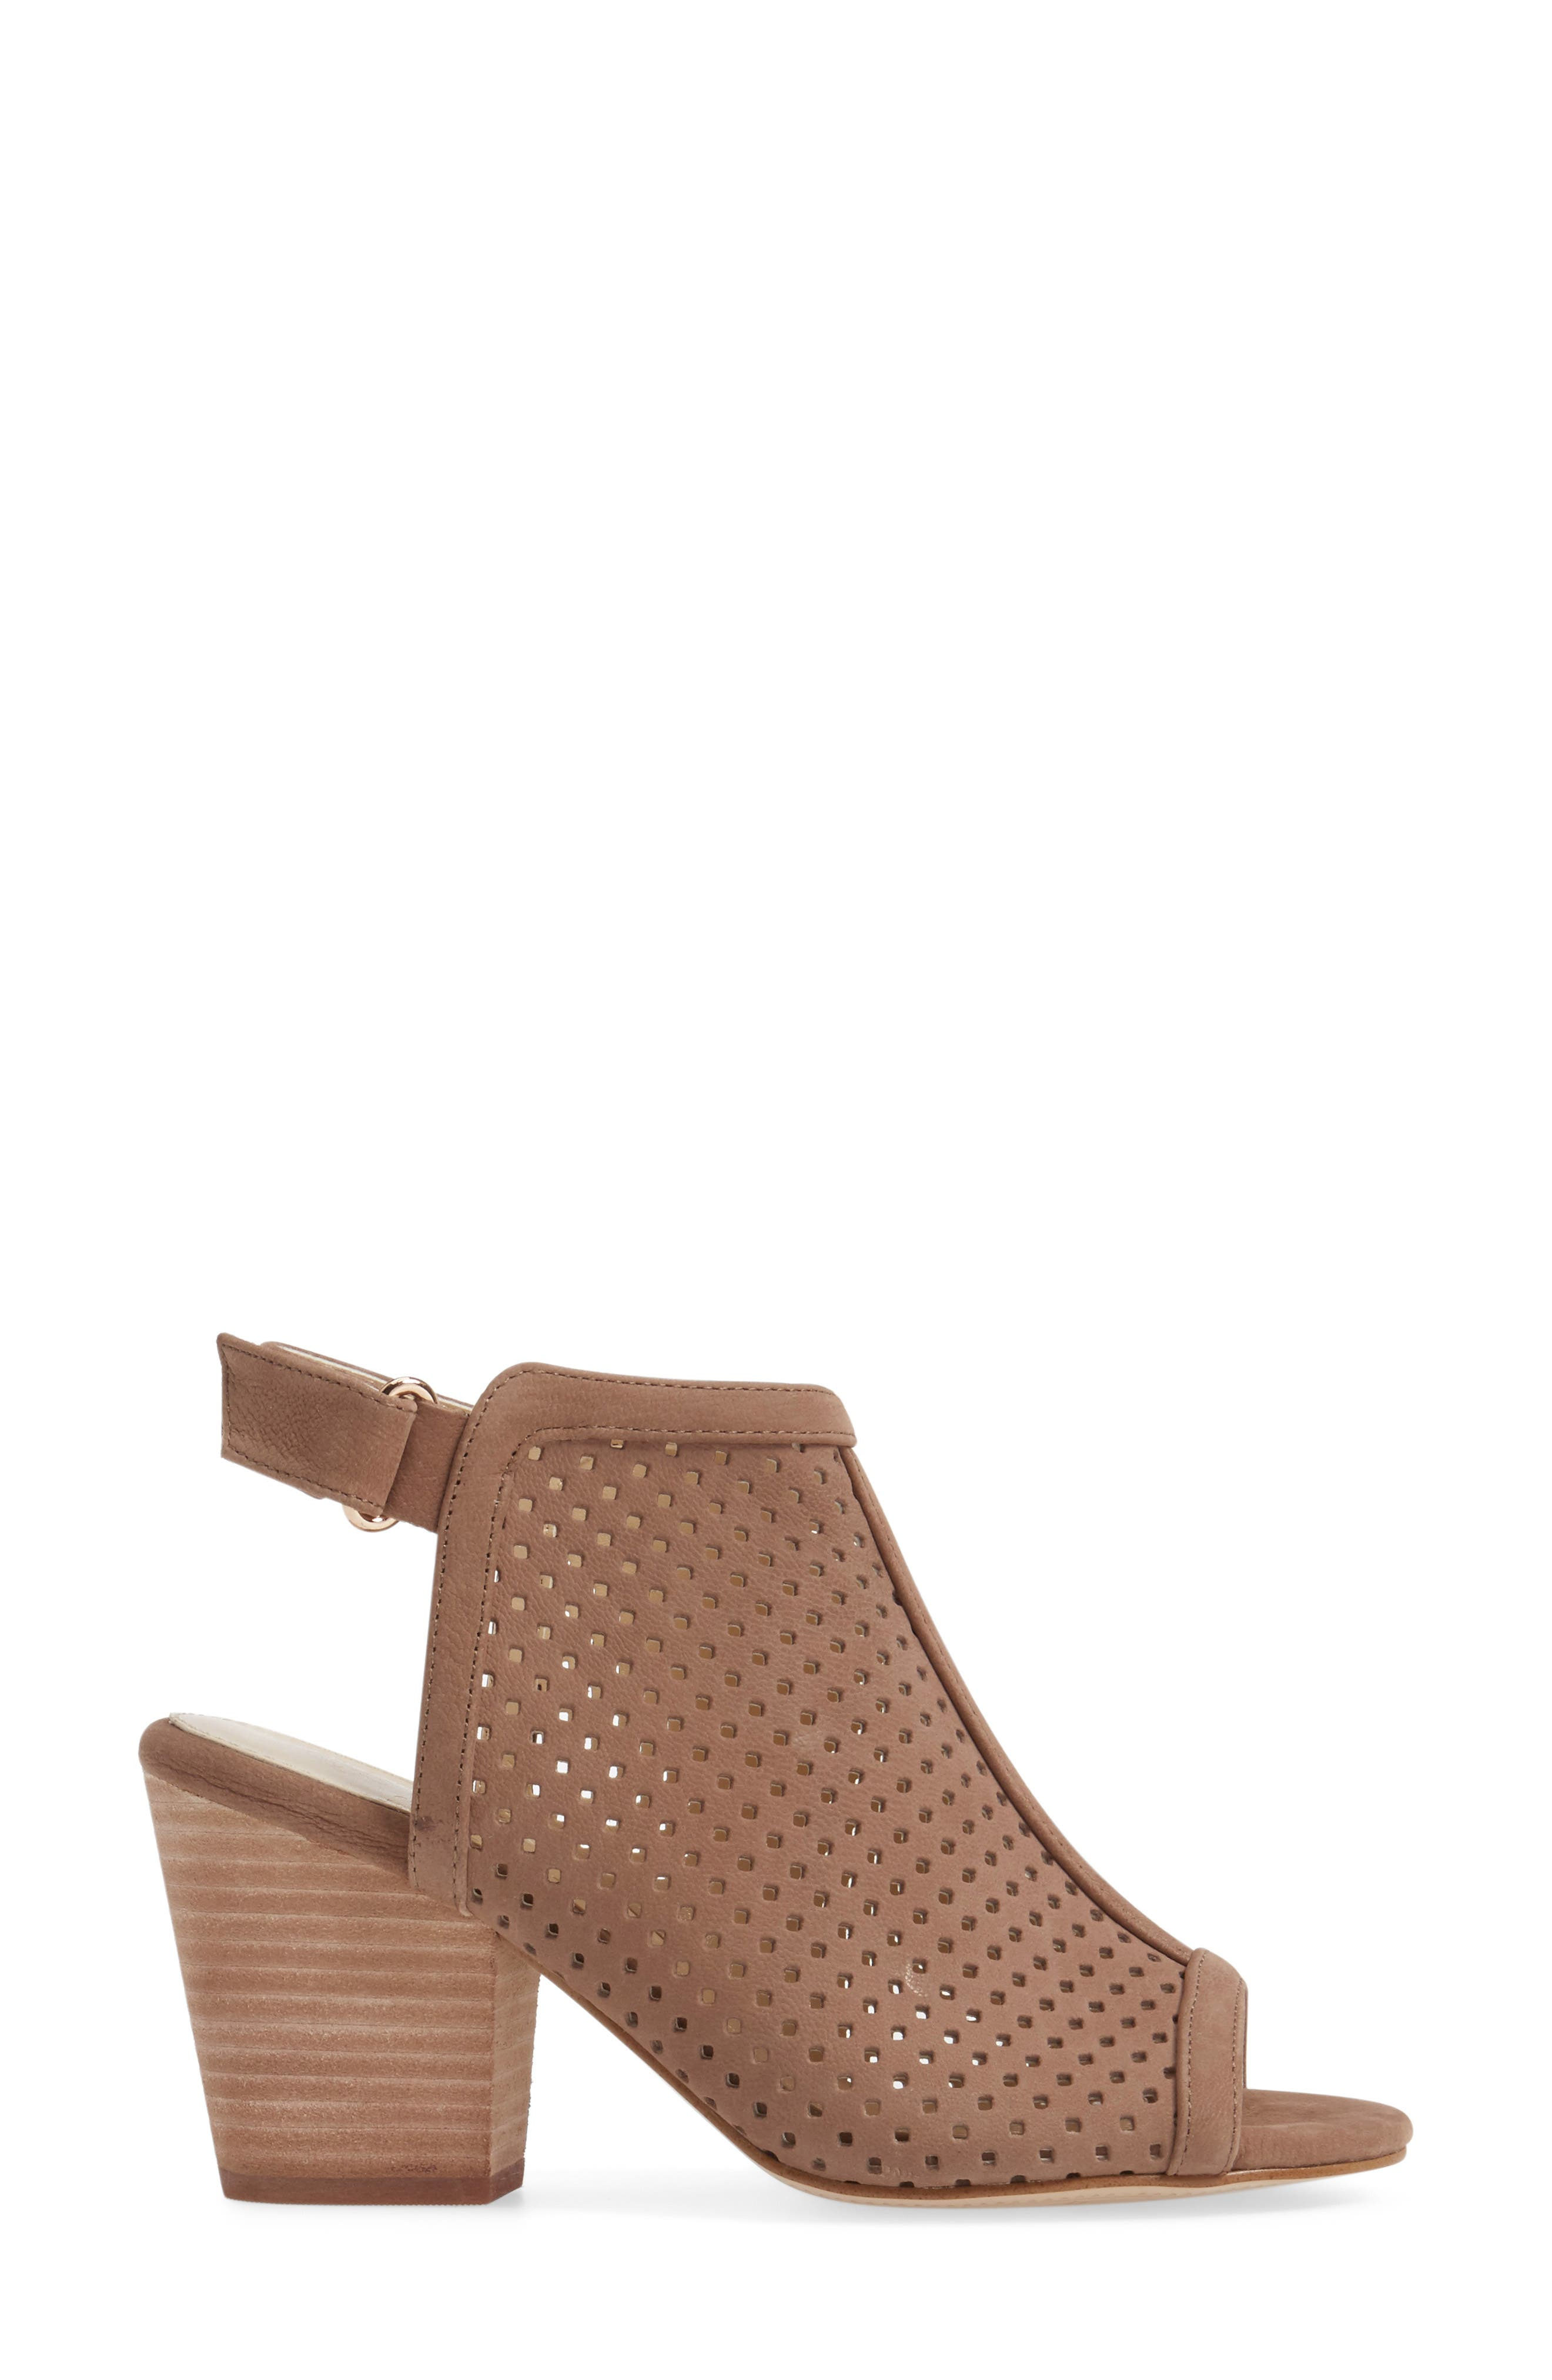 ,                             'Lora' Perforated Open-Toe Bootie Sandal,                             Alternate thumbnail 13, color,                             250